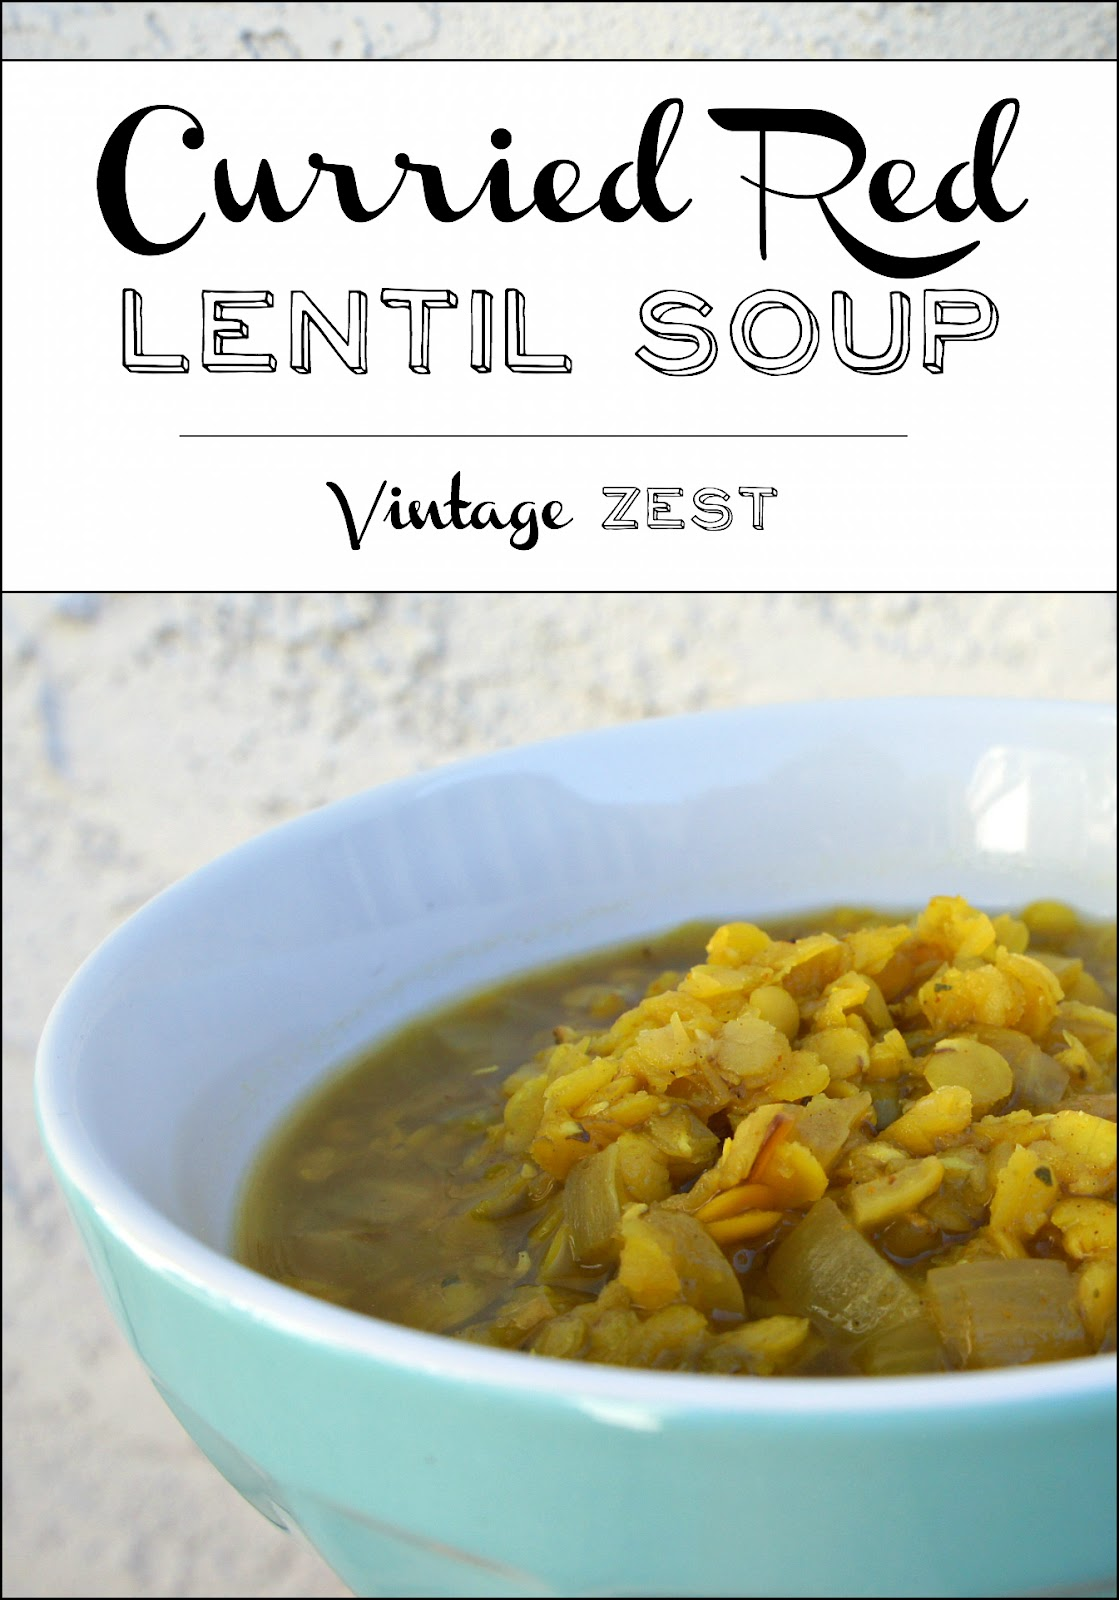 Curried Red Lentil Soup on Diane's Vintage Zest!